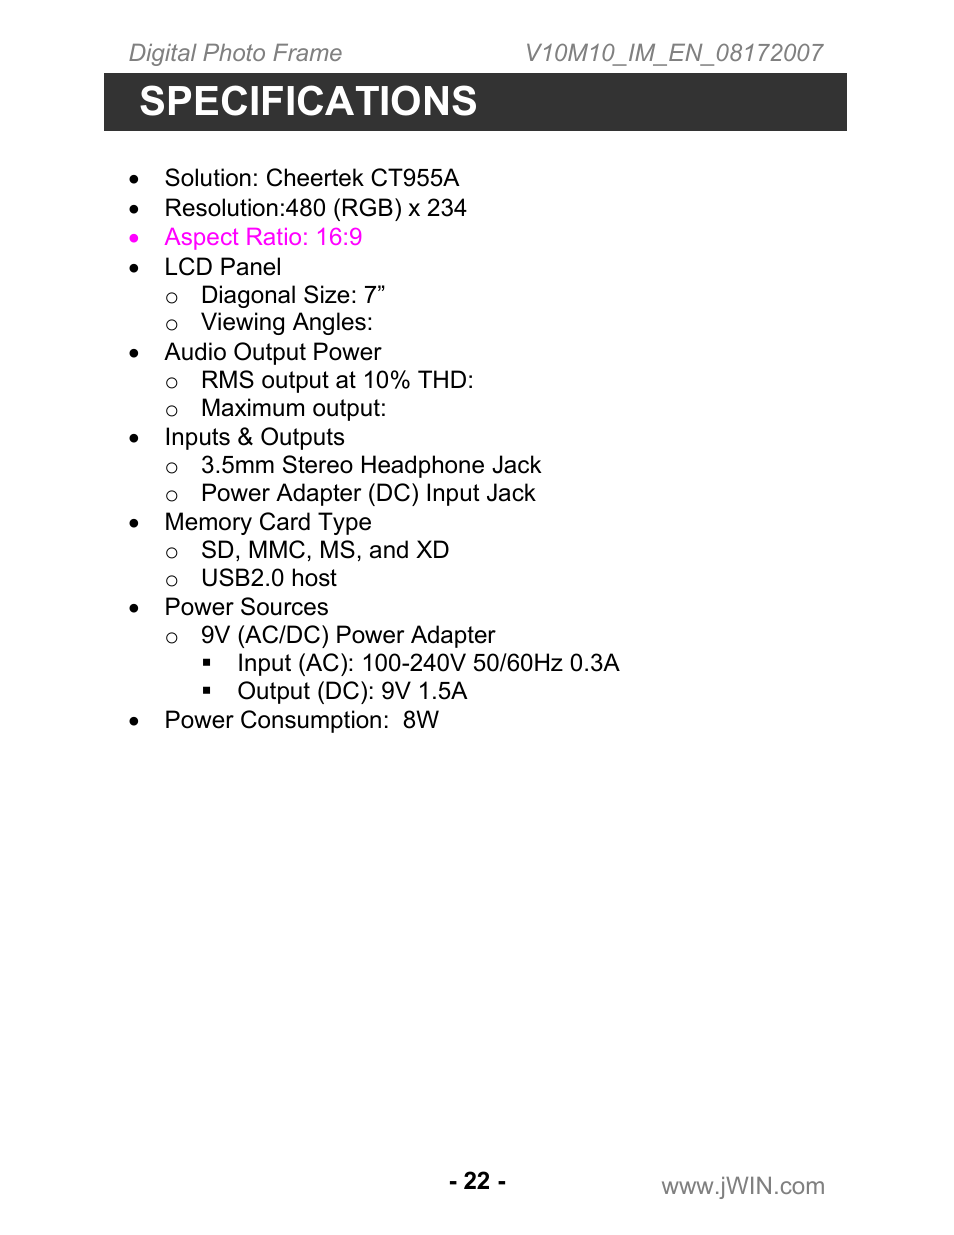 Specifications | Jwin JP-147 User Manual | Page 22 / 24